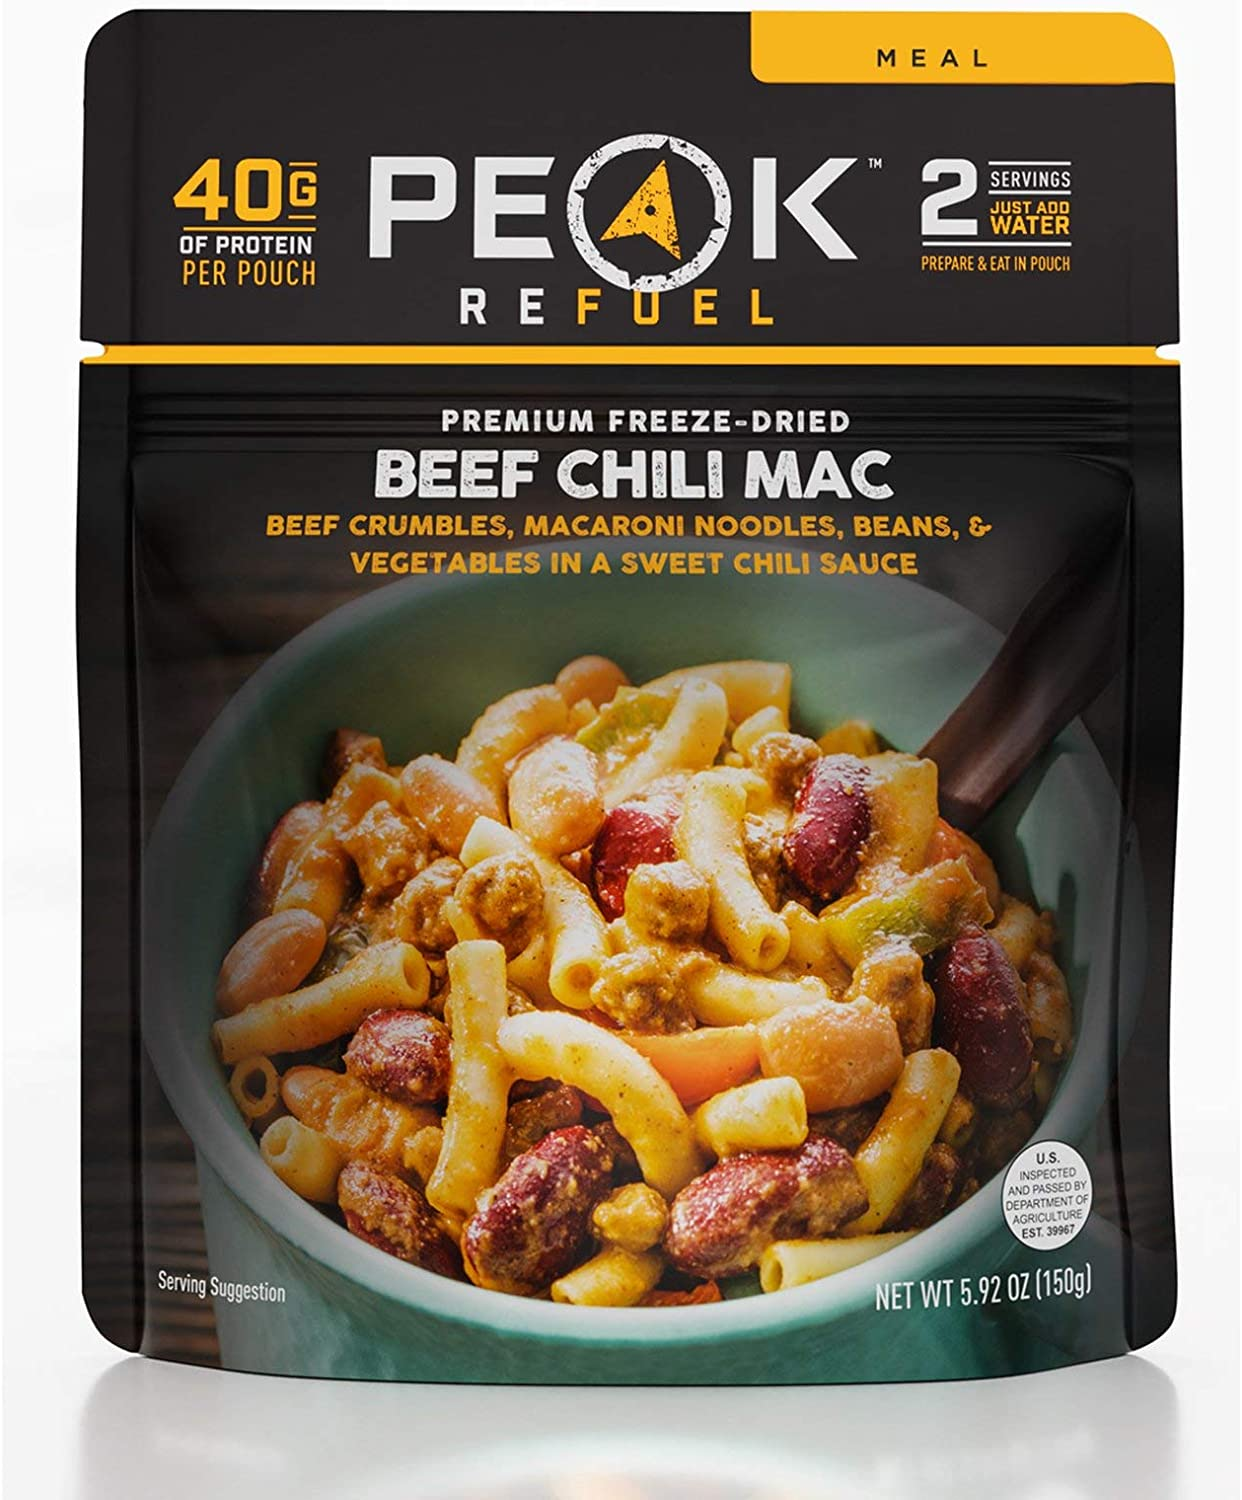 Peak Refuel Beef Chili Mac | Freeze Dried Backpacking and Camping Food | Amazing Taste | High Protein | Real Meat | Quick Prep